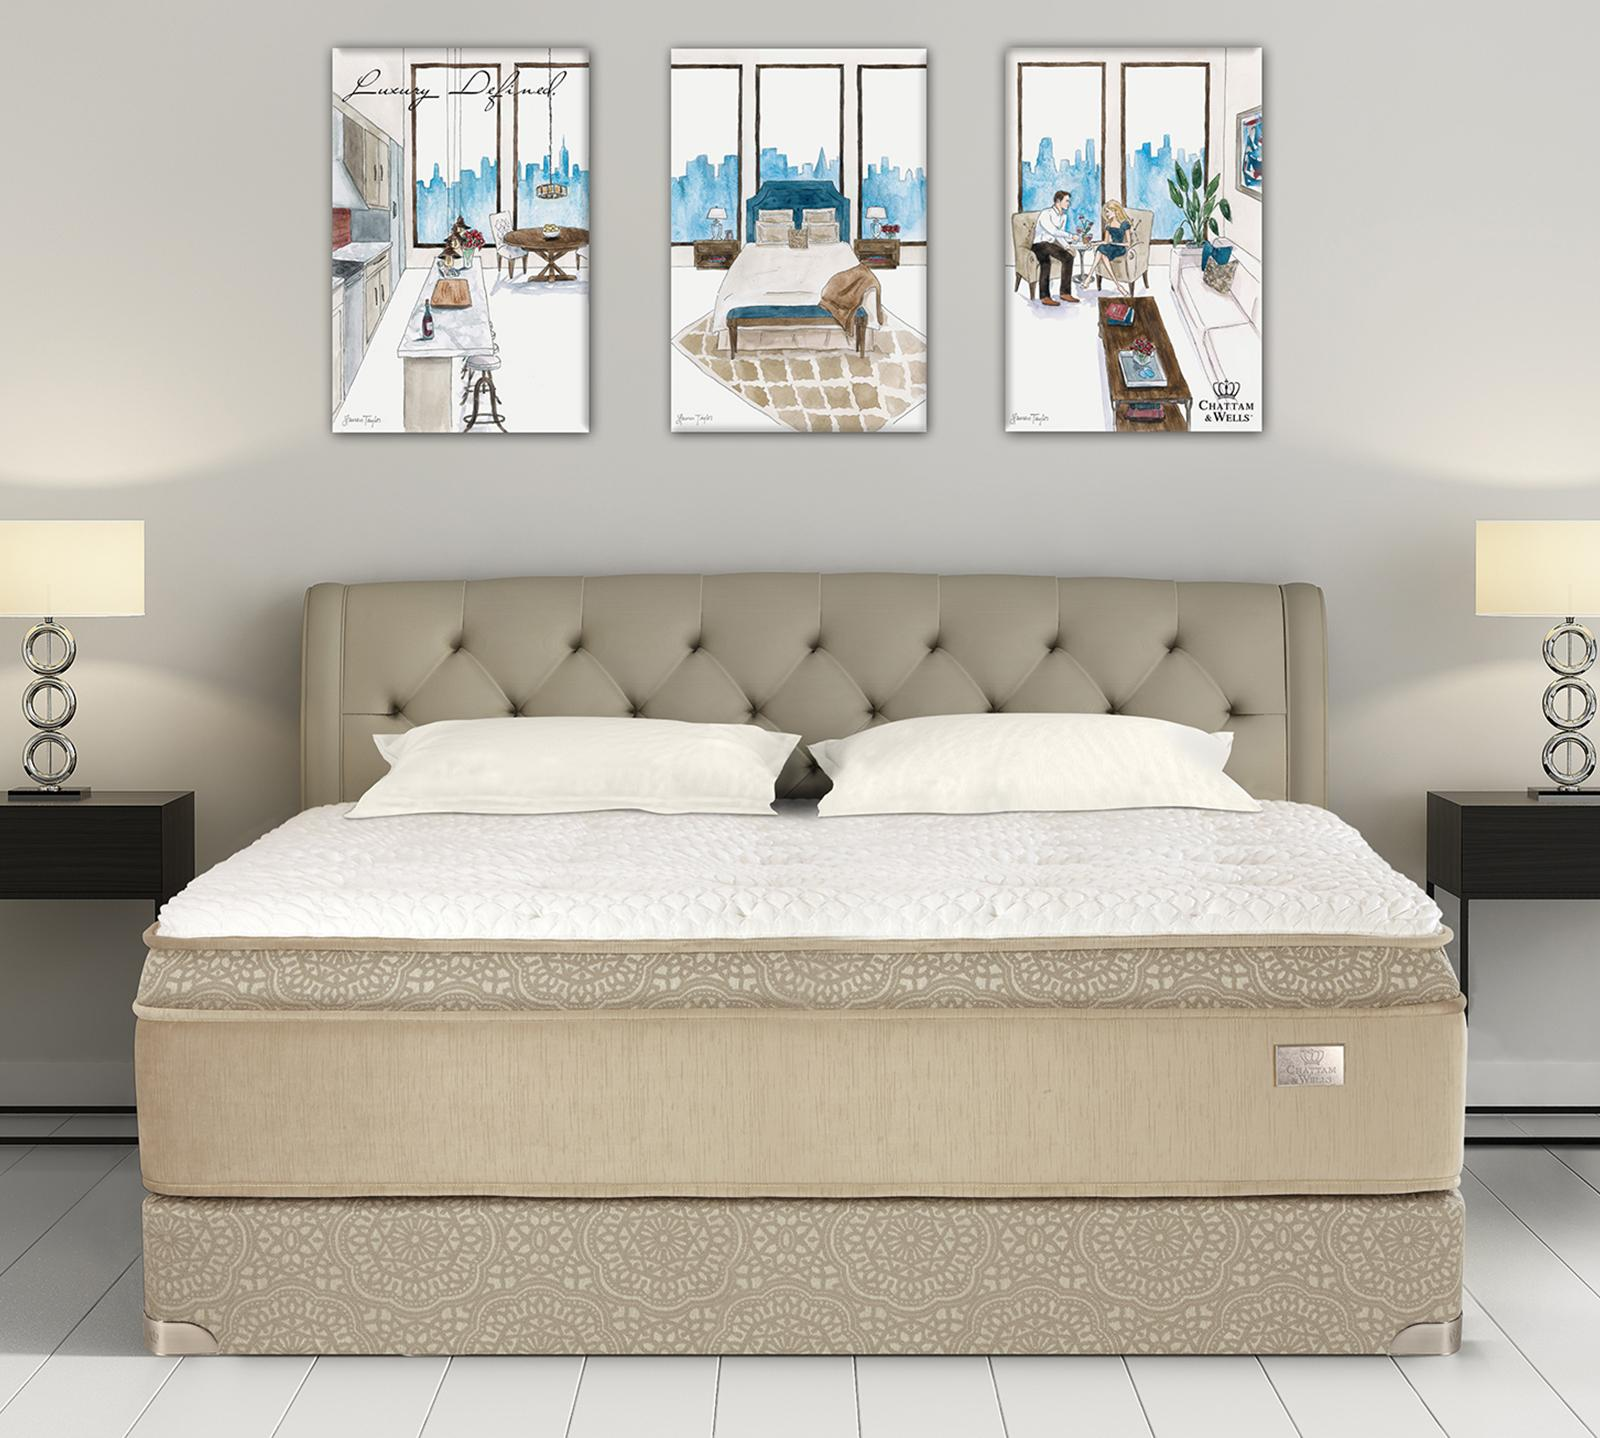 "The Daniella Euro Top mattress is the perfect combination of performance and comfort, on top of the 720 fabric-encased samson coil, this mattress features 788 lo-pro wrapped coils (aka 4"" fabric encased Foam Encased Coil Unit) that act as an advanced conforming support layer. Designed to relieve stress and pressure points in the body while providing additional postural support."